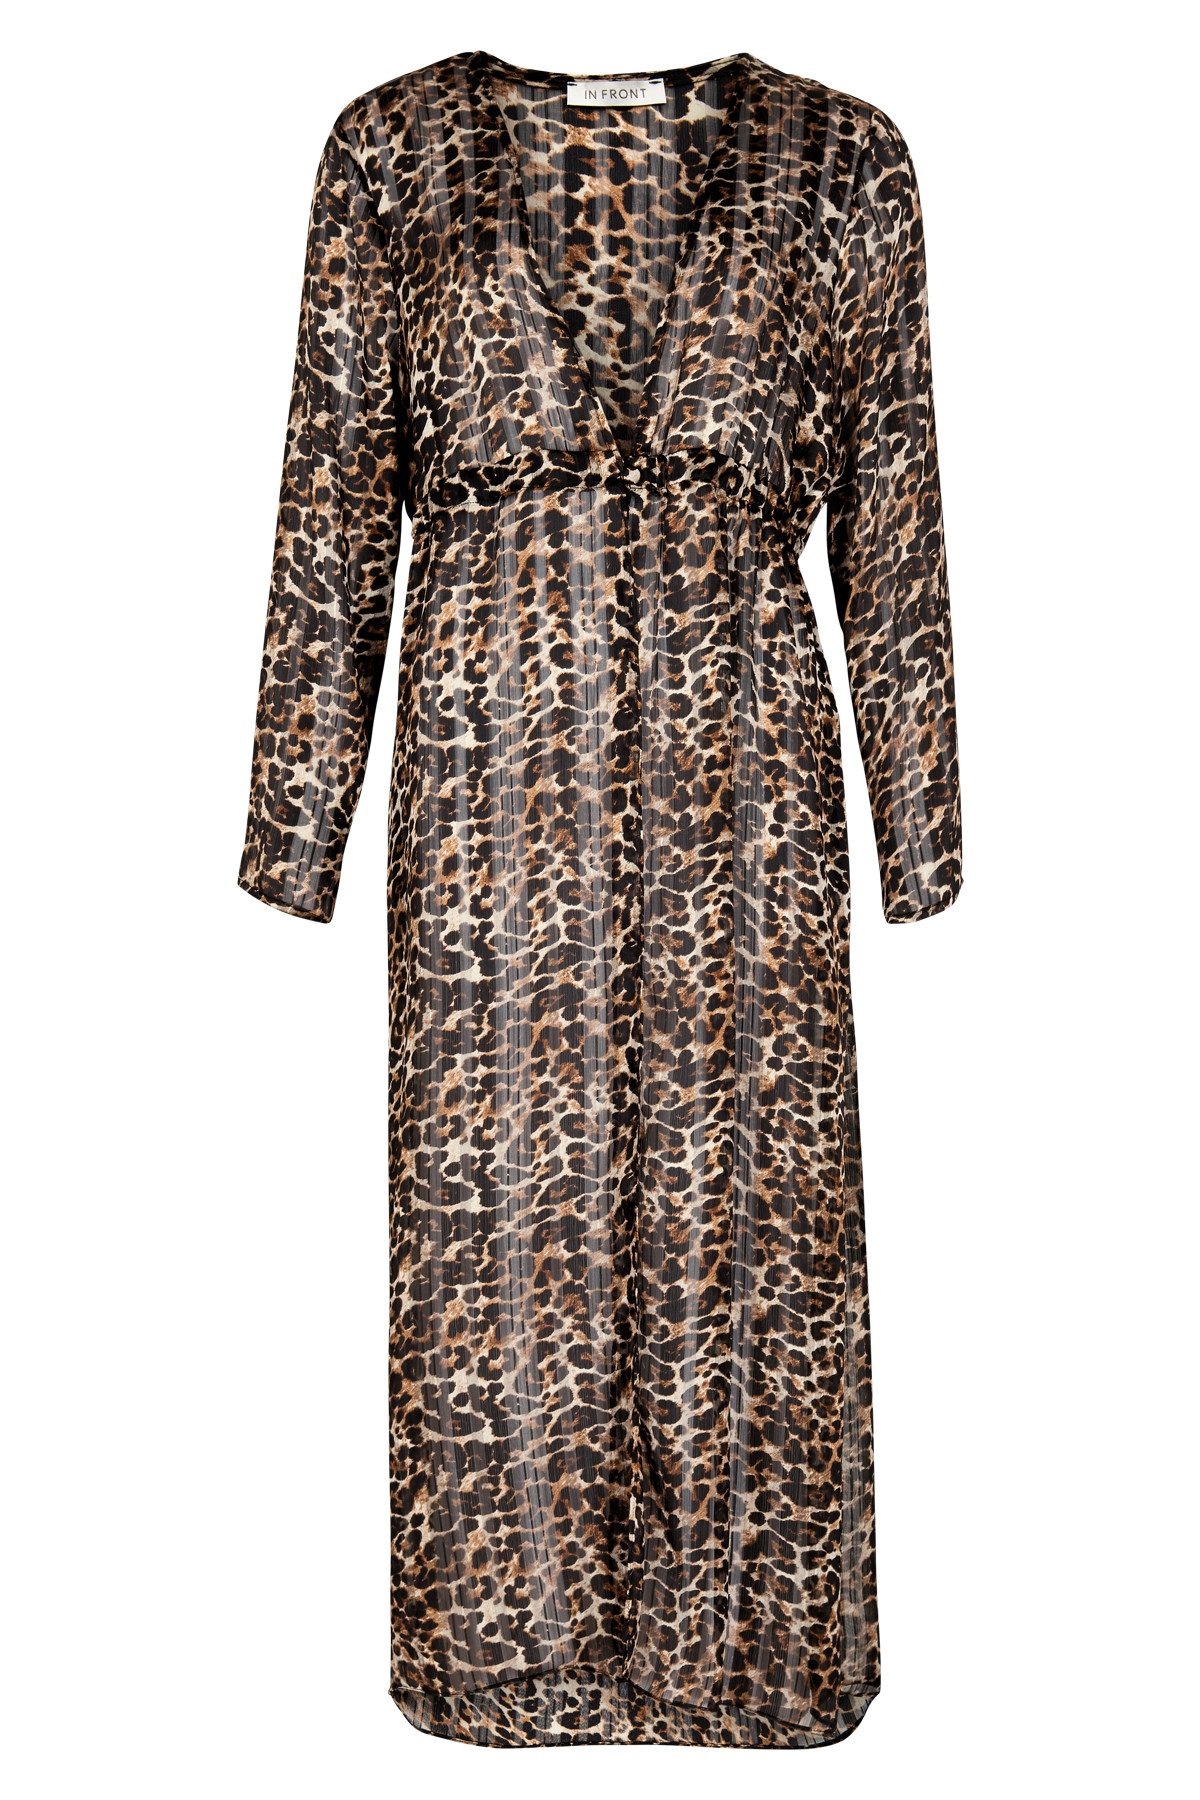 Image of   IN FRONT ANNA LANG LEOPARD CARIGAN 13056 (Dark Coffee 809, XL)